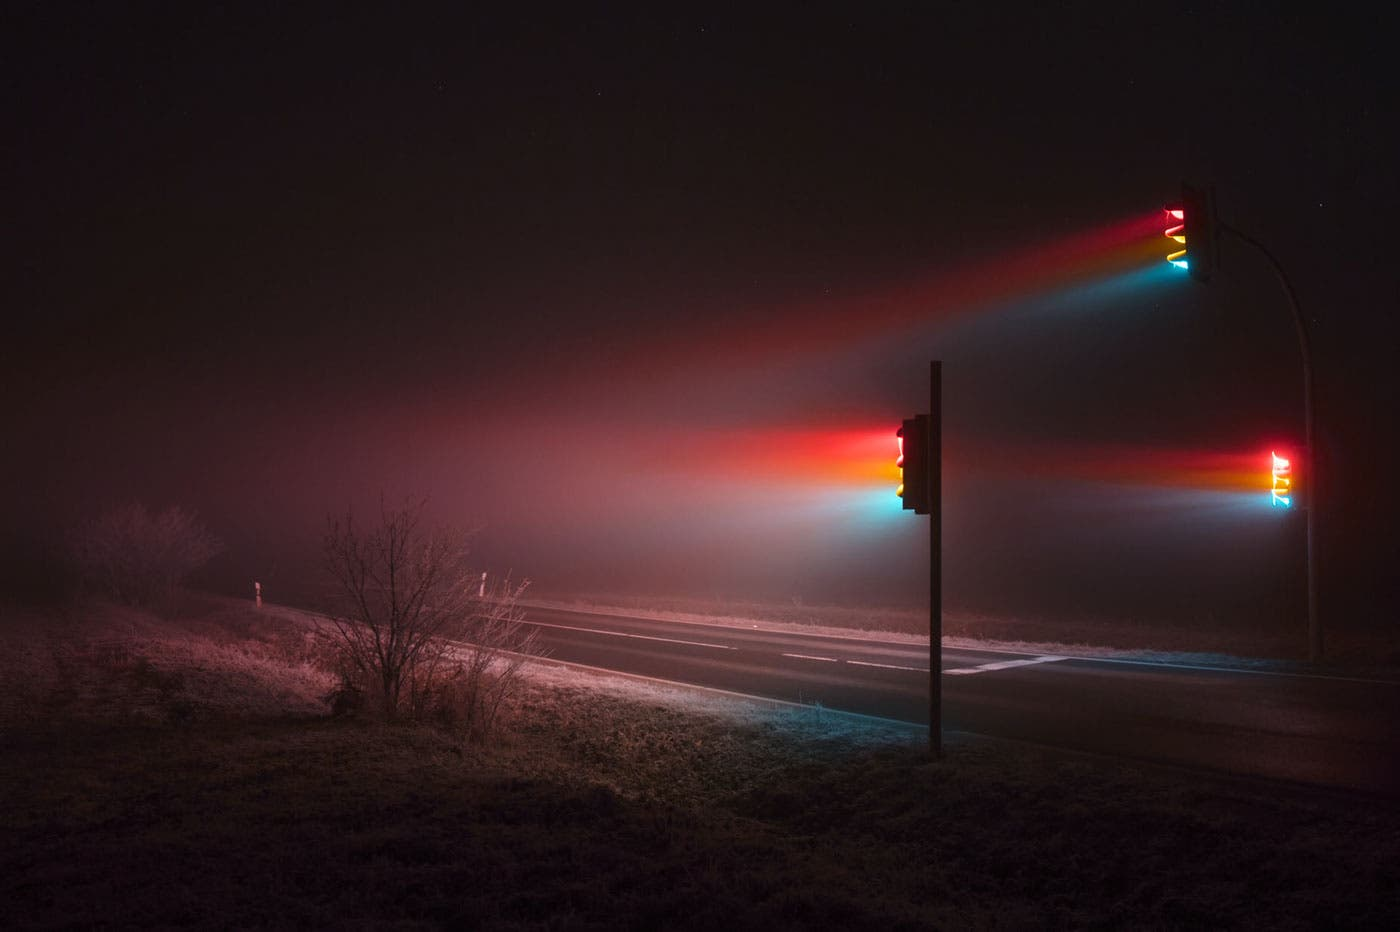 Lucas Zimmermann Captures Astounding Images Of Traffic Light Beaming Through Mist